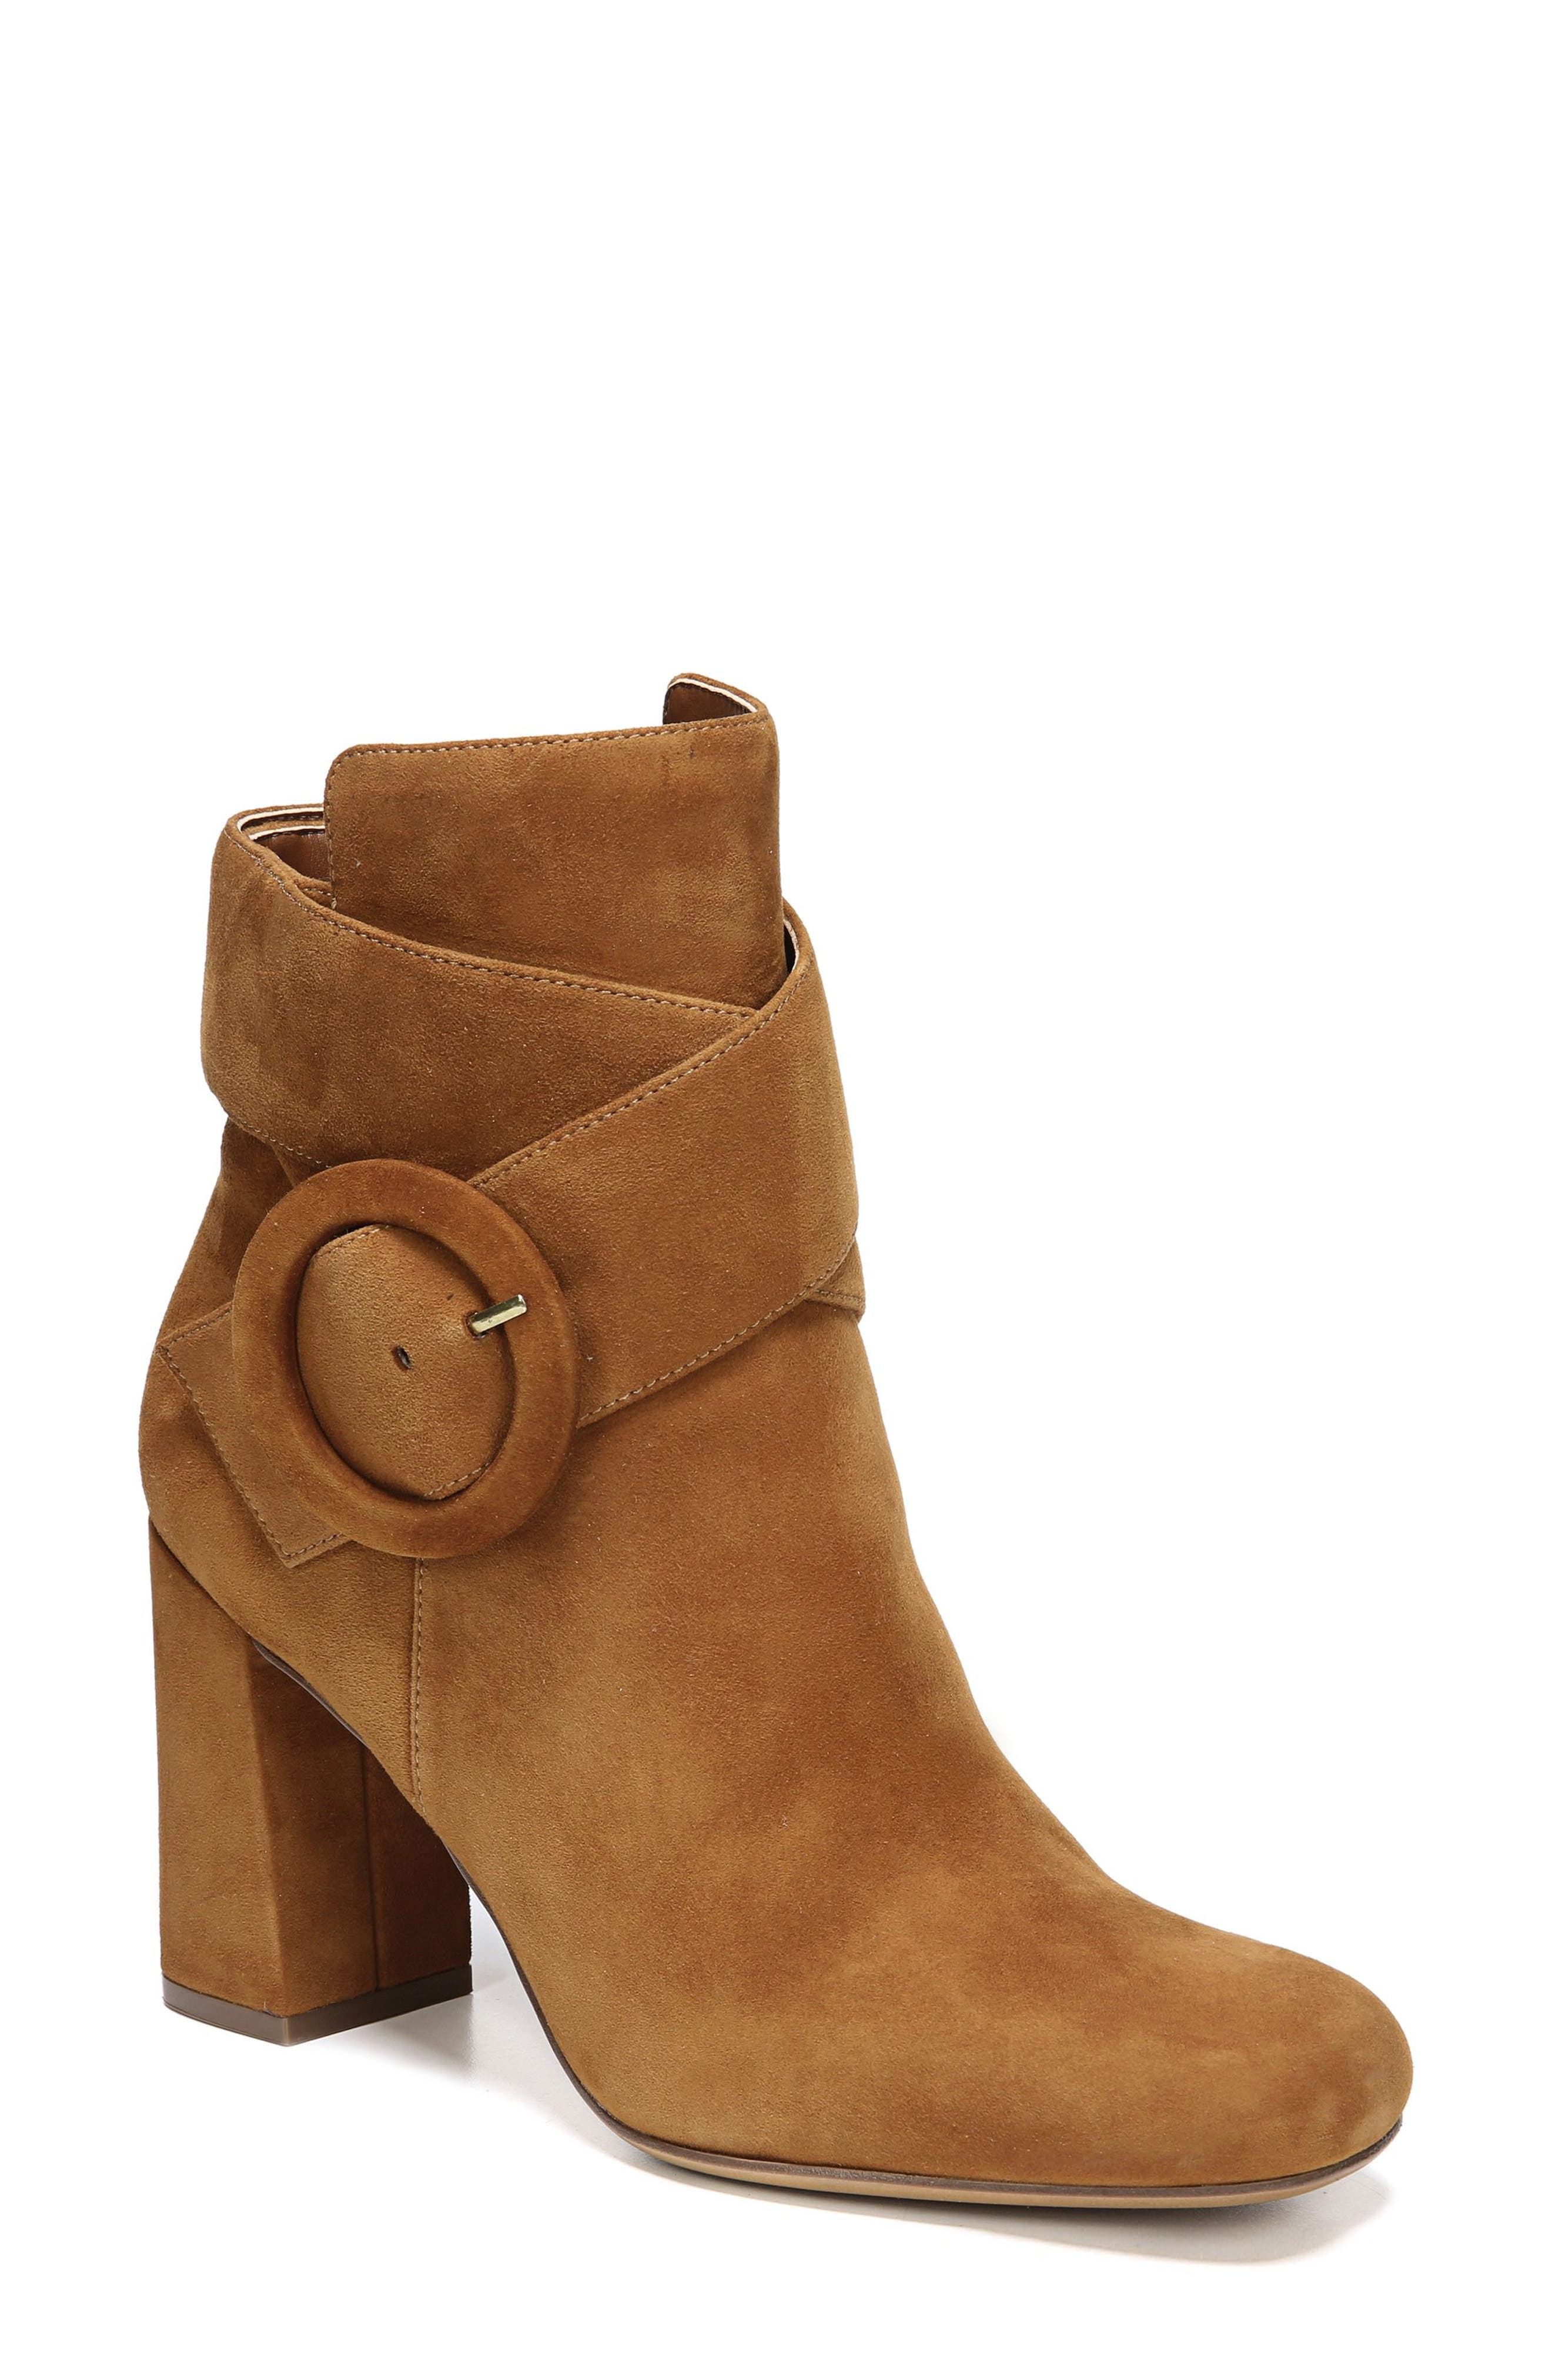 Alternate Image 1 Selected - Nautralizer Rae Bootie (Women)